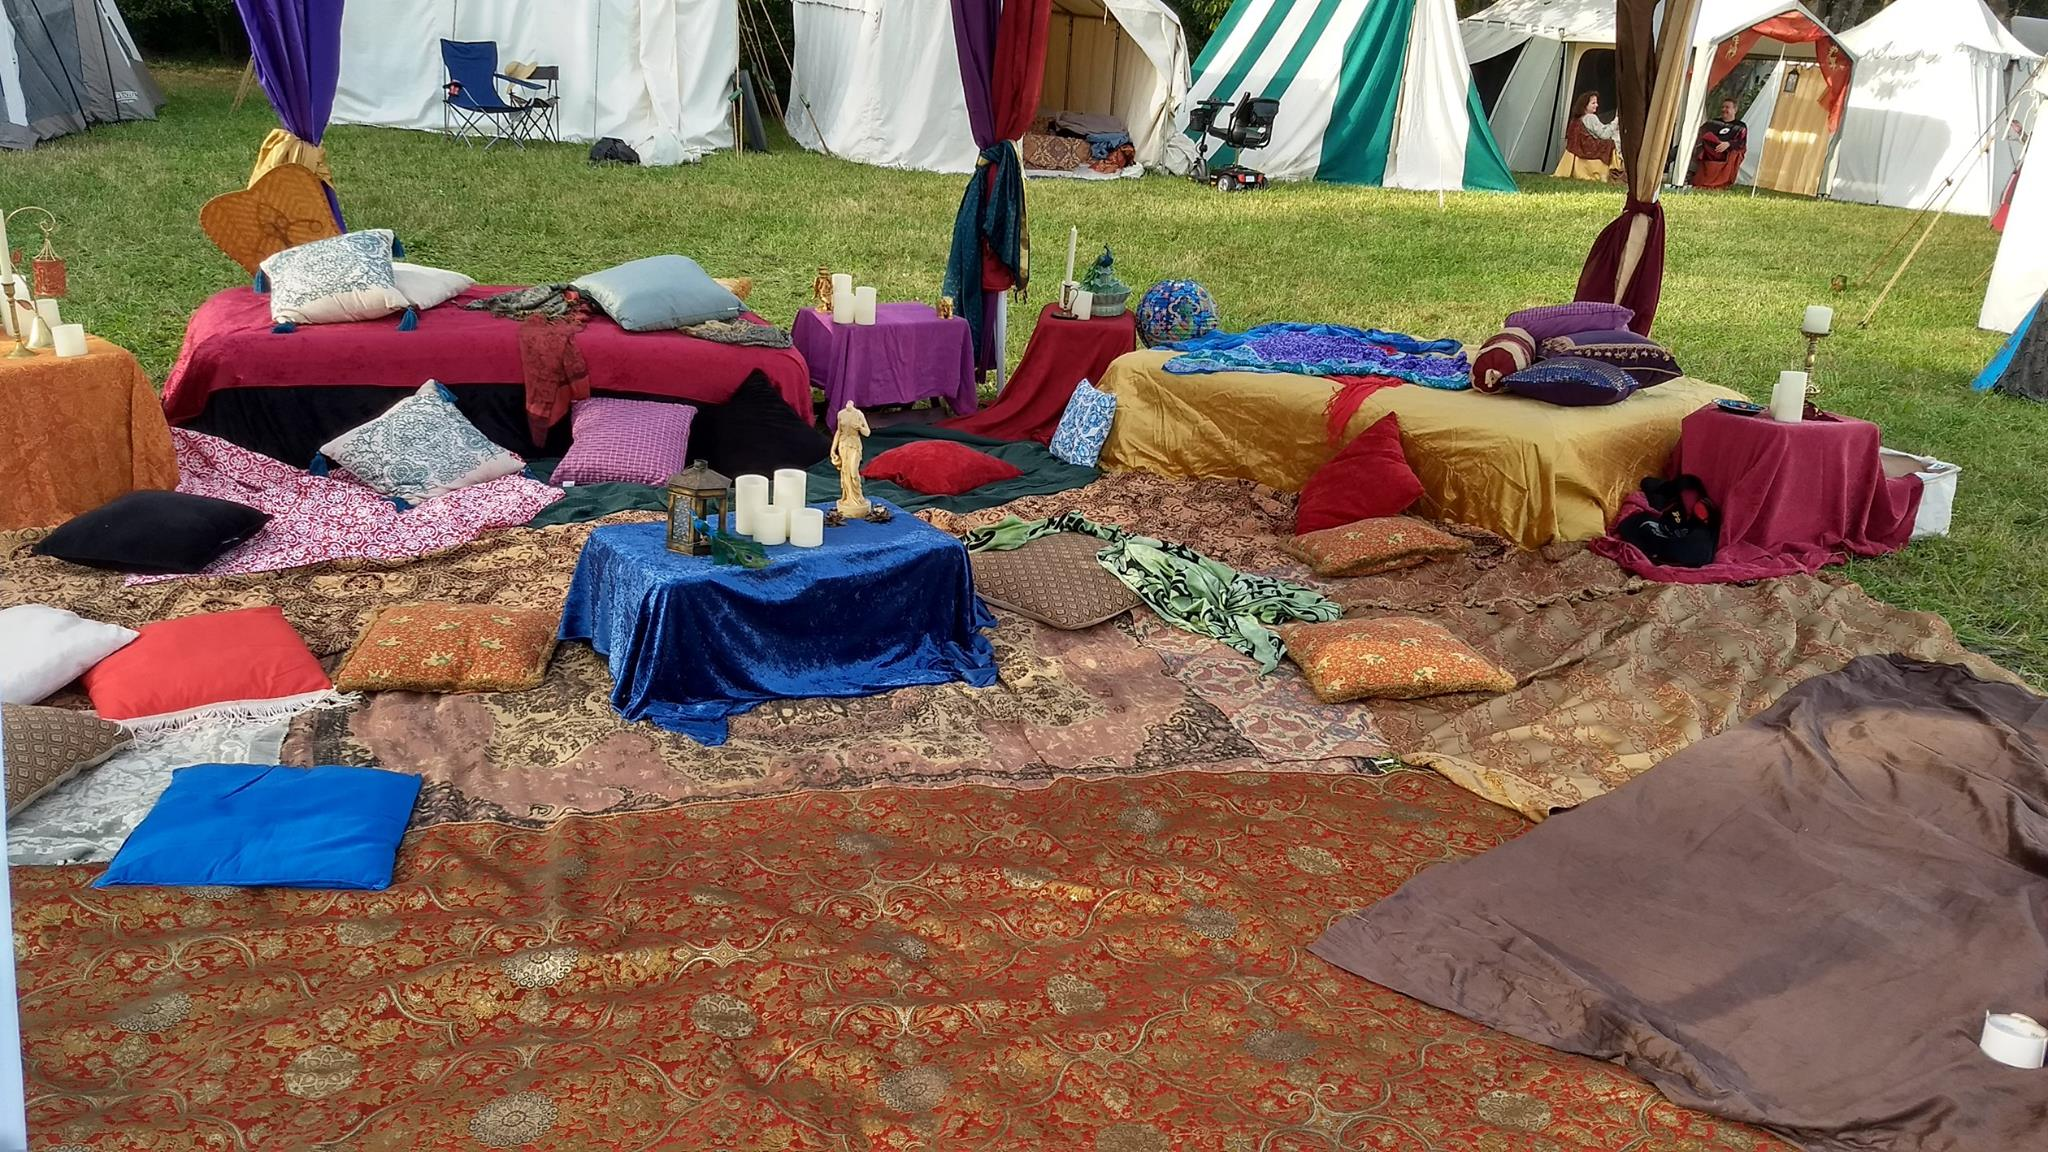 A large white canopy tent, under which are rugs, cushions, beds, and tables all covered with luxurious fabrics and fake candles